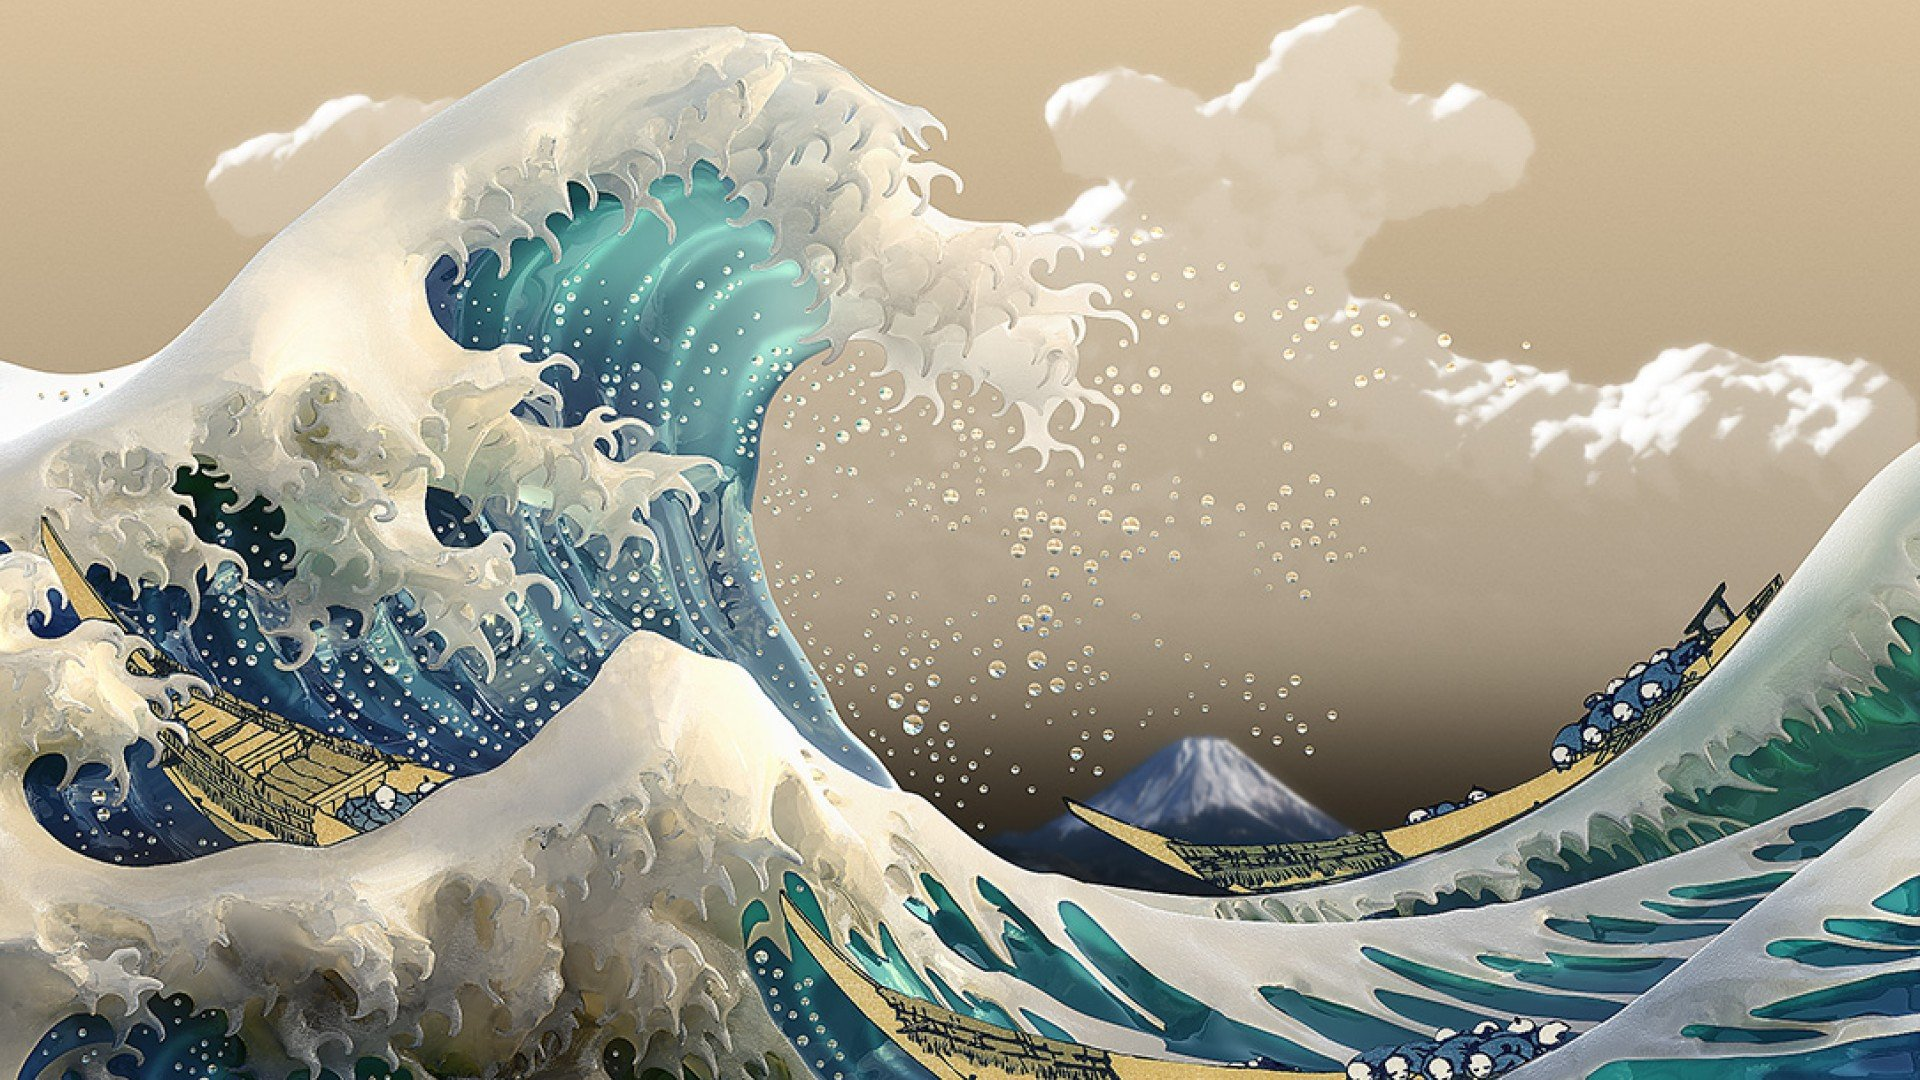 Free Download Screenheaven The Great Wave Off Kanagawa Ocean Waves